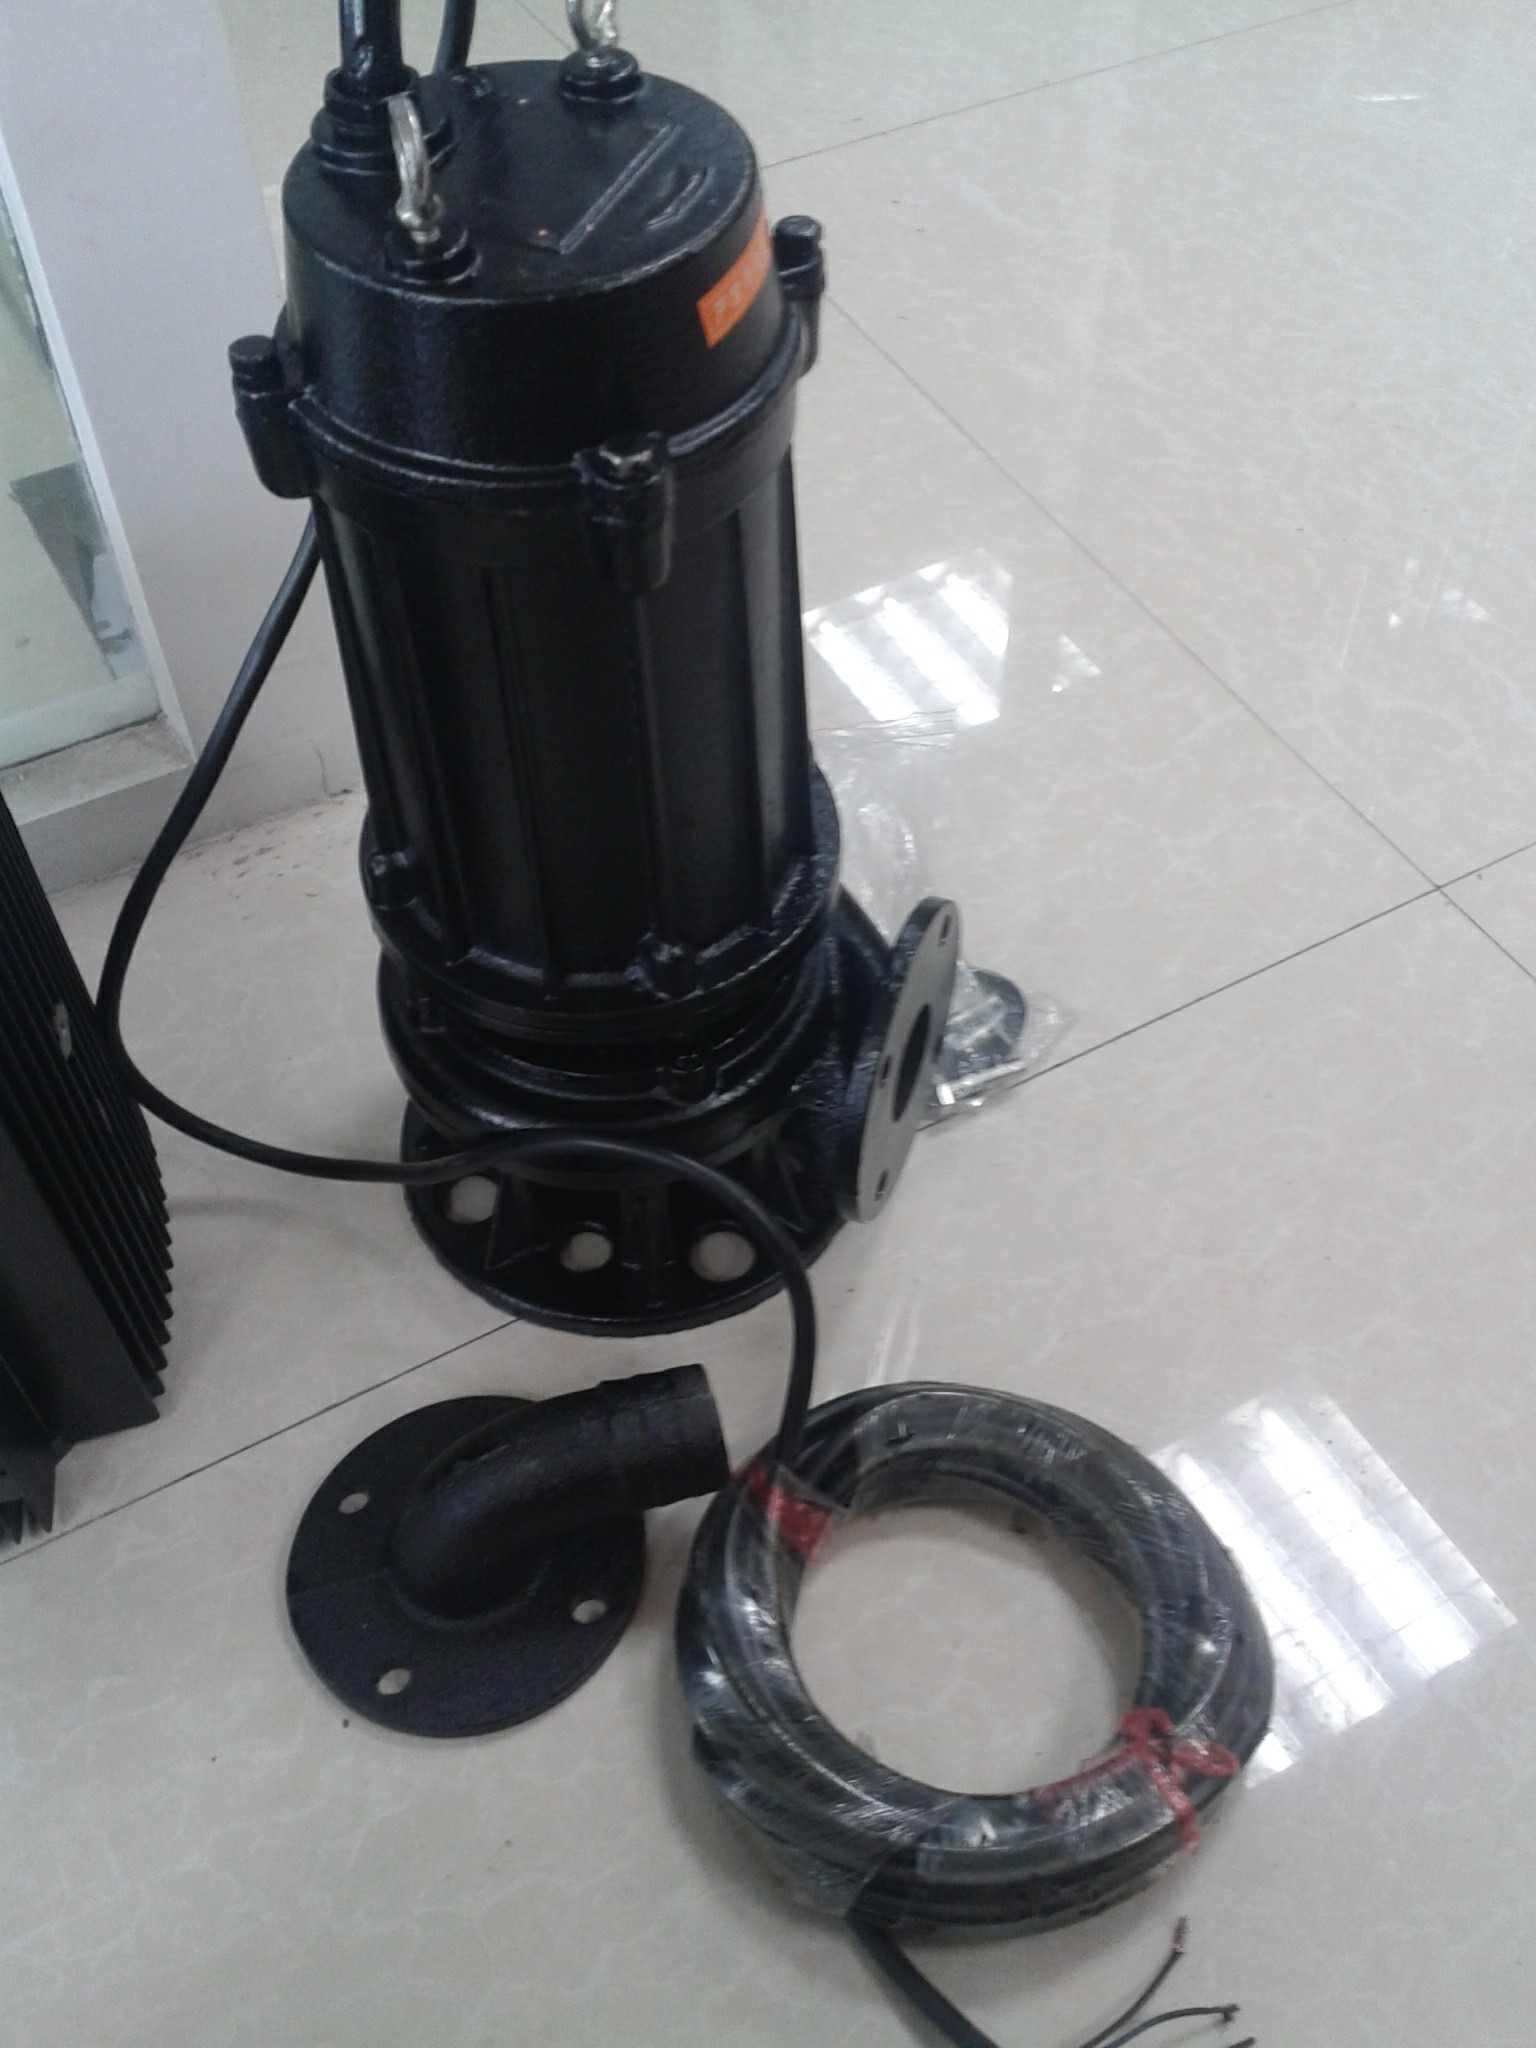 50WQ15-25-2.2KW submersible sewage pump sewage pump submersible pumps sewage pump sewage pump pumps